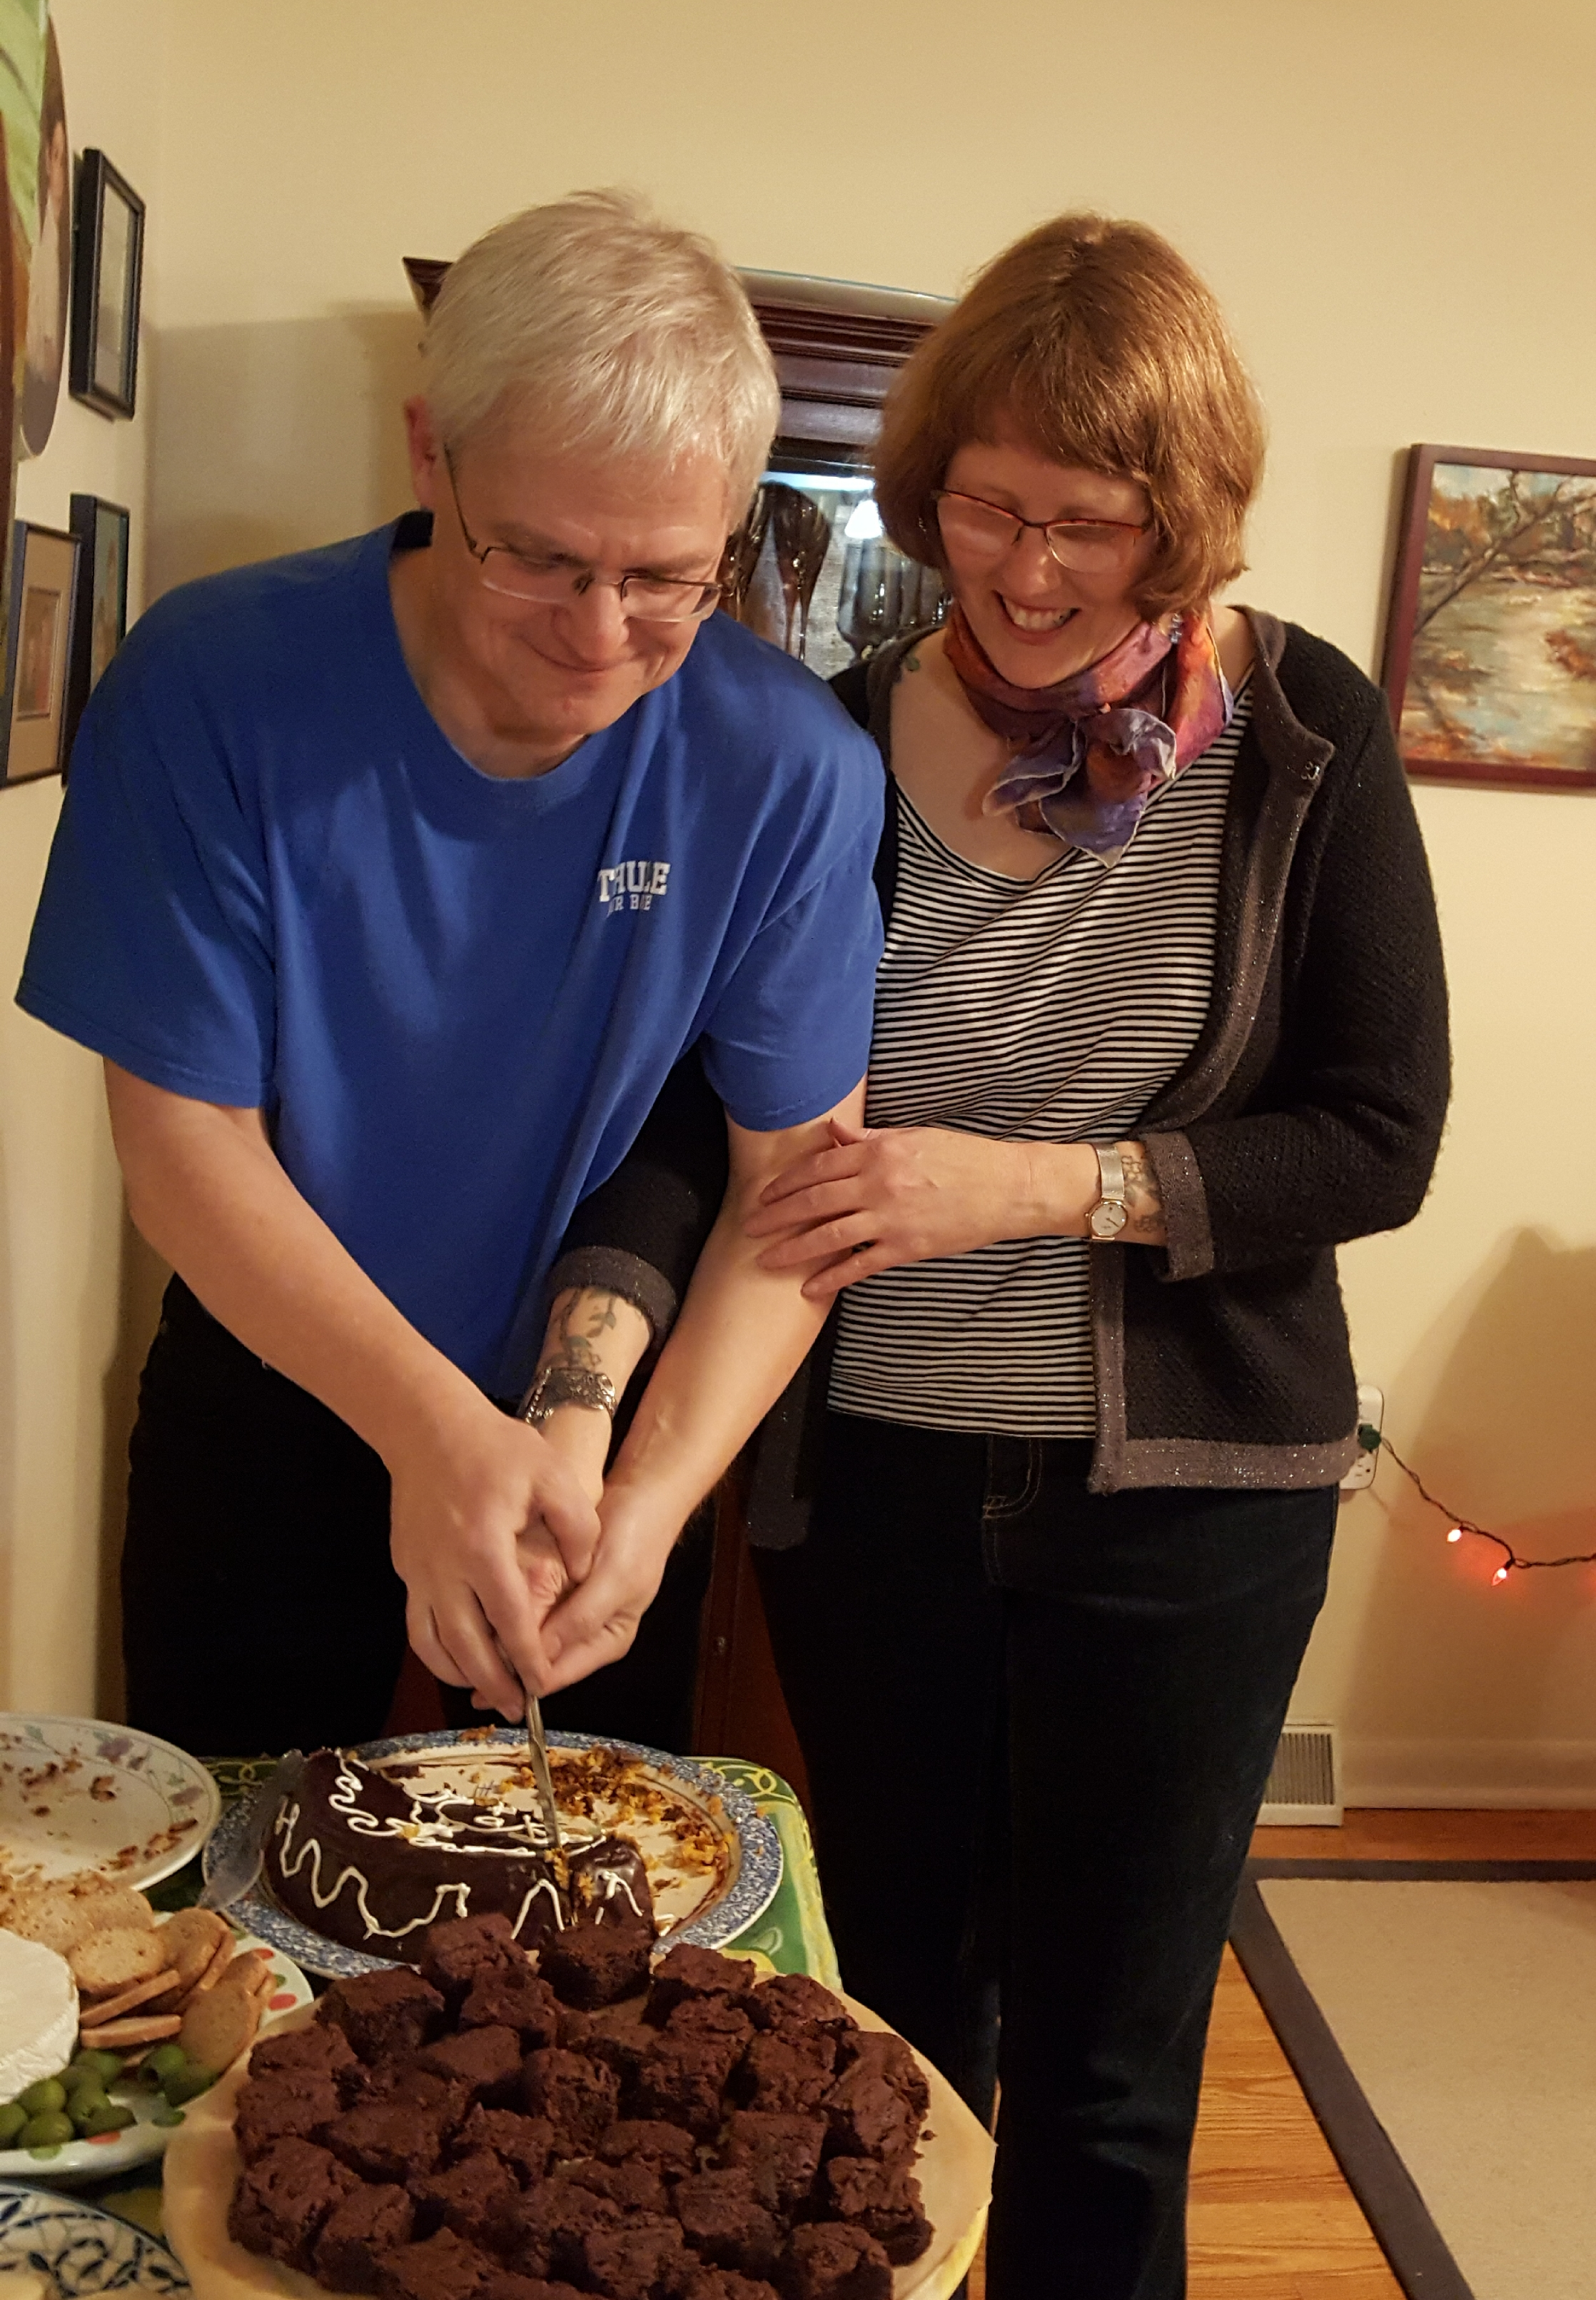 We almost forgot the obligatory cutting the cake photo. Lucky for us Caryn baked a cake.